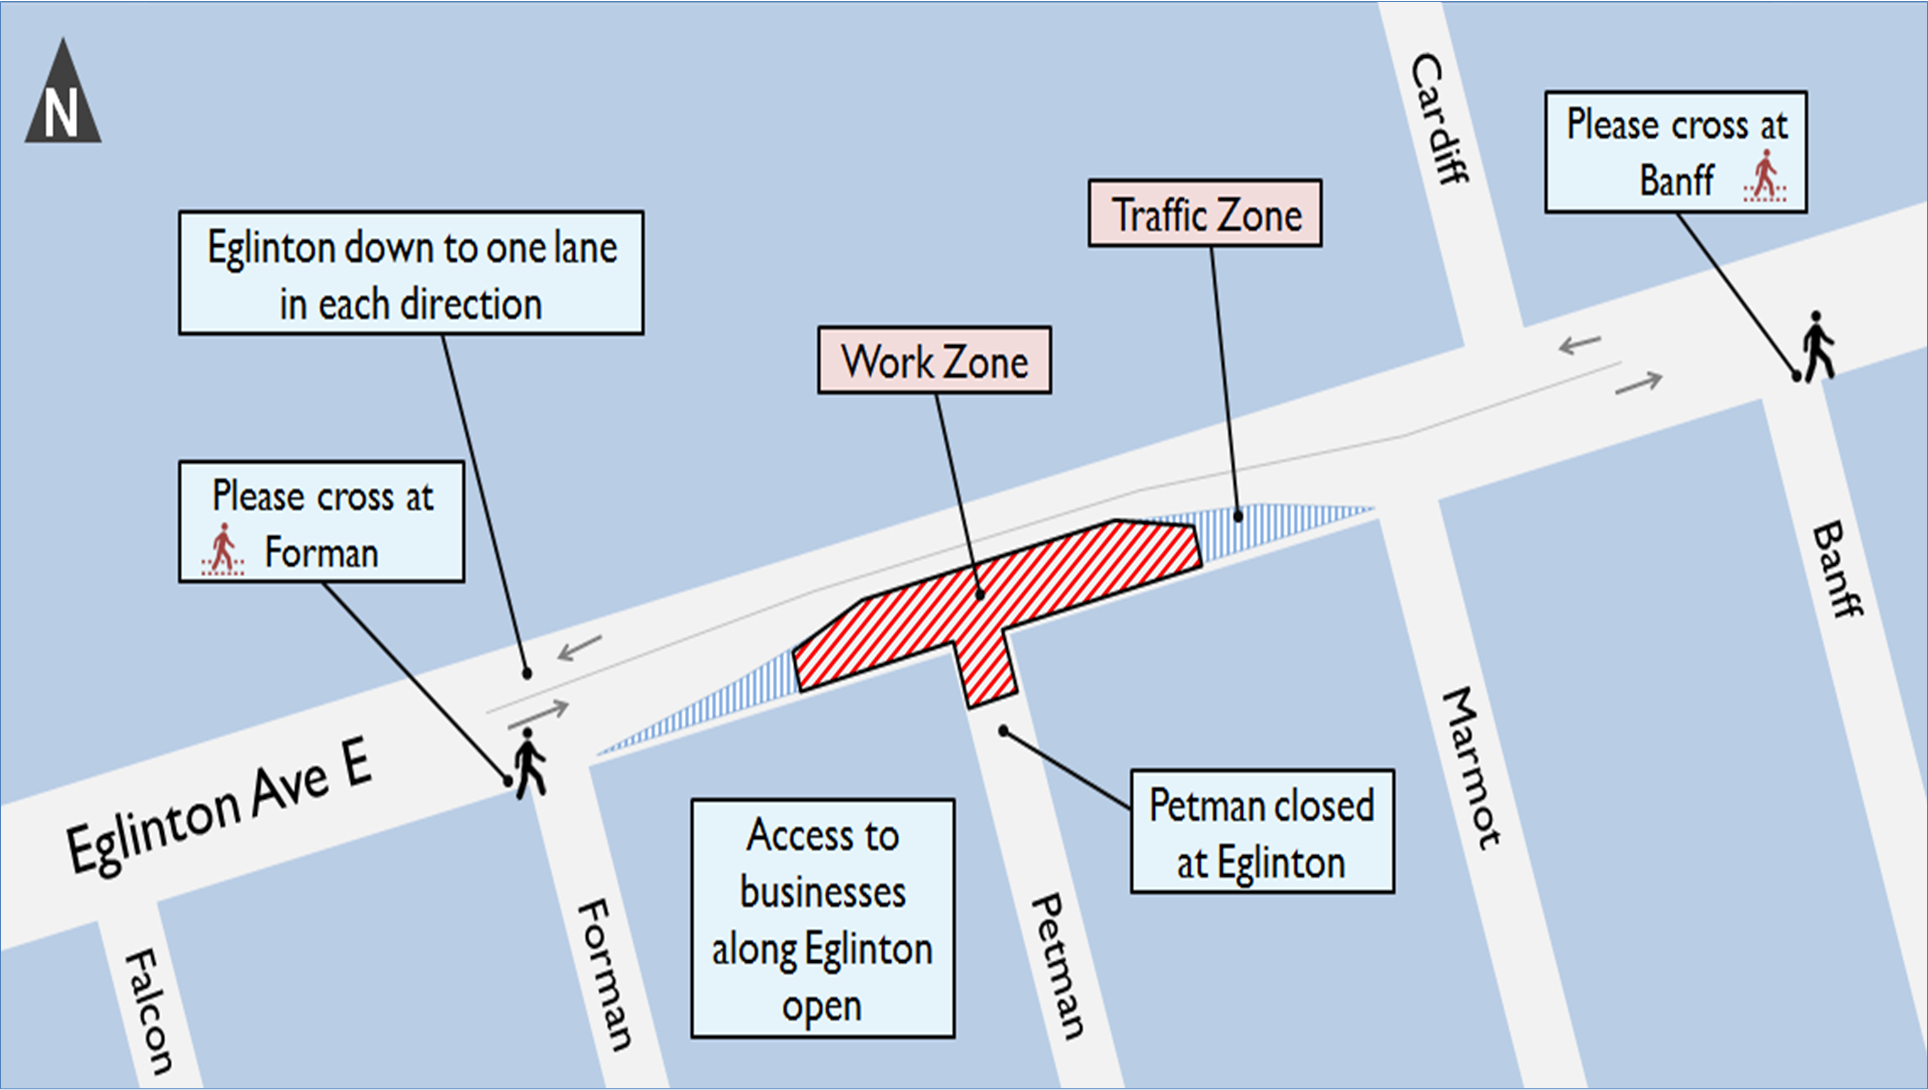 Map showing the traffic and pedestrian details for this work